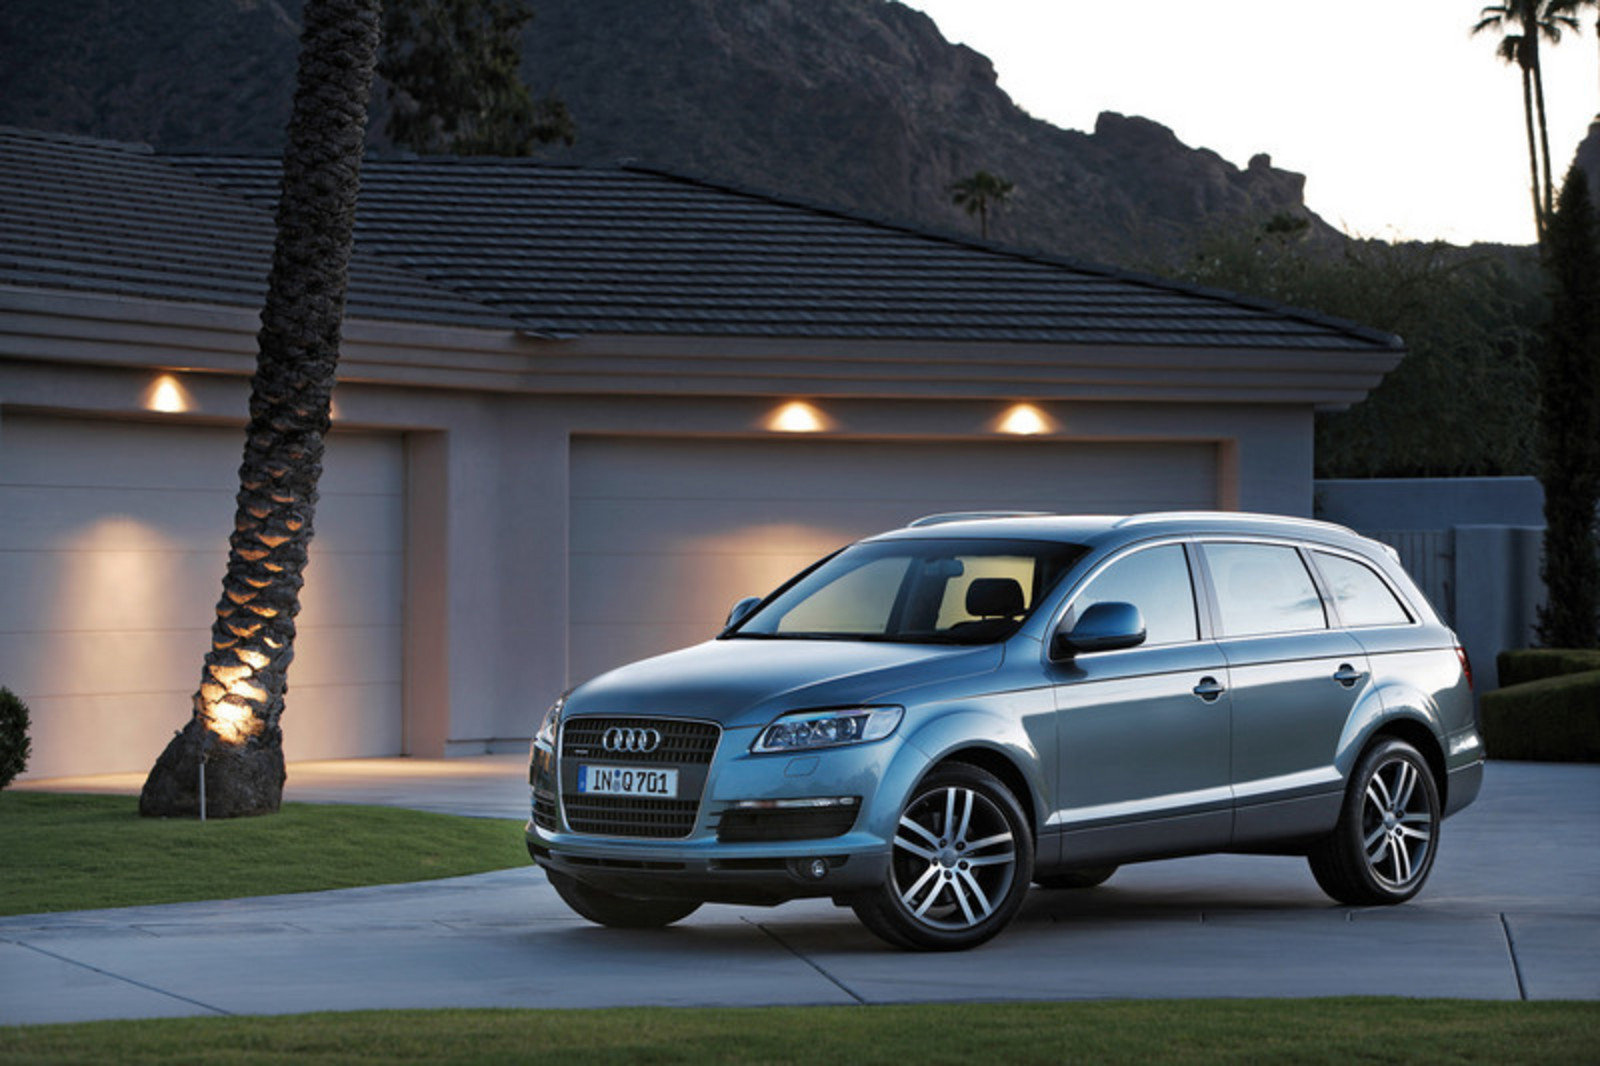 2007 audi q7 picture 45029 car review top speed. Black Bedroom Furniture Sets. Home Design Ideas